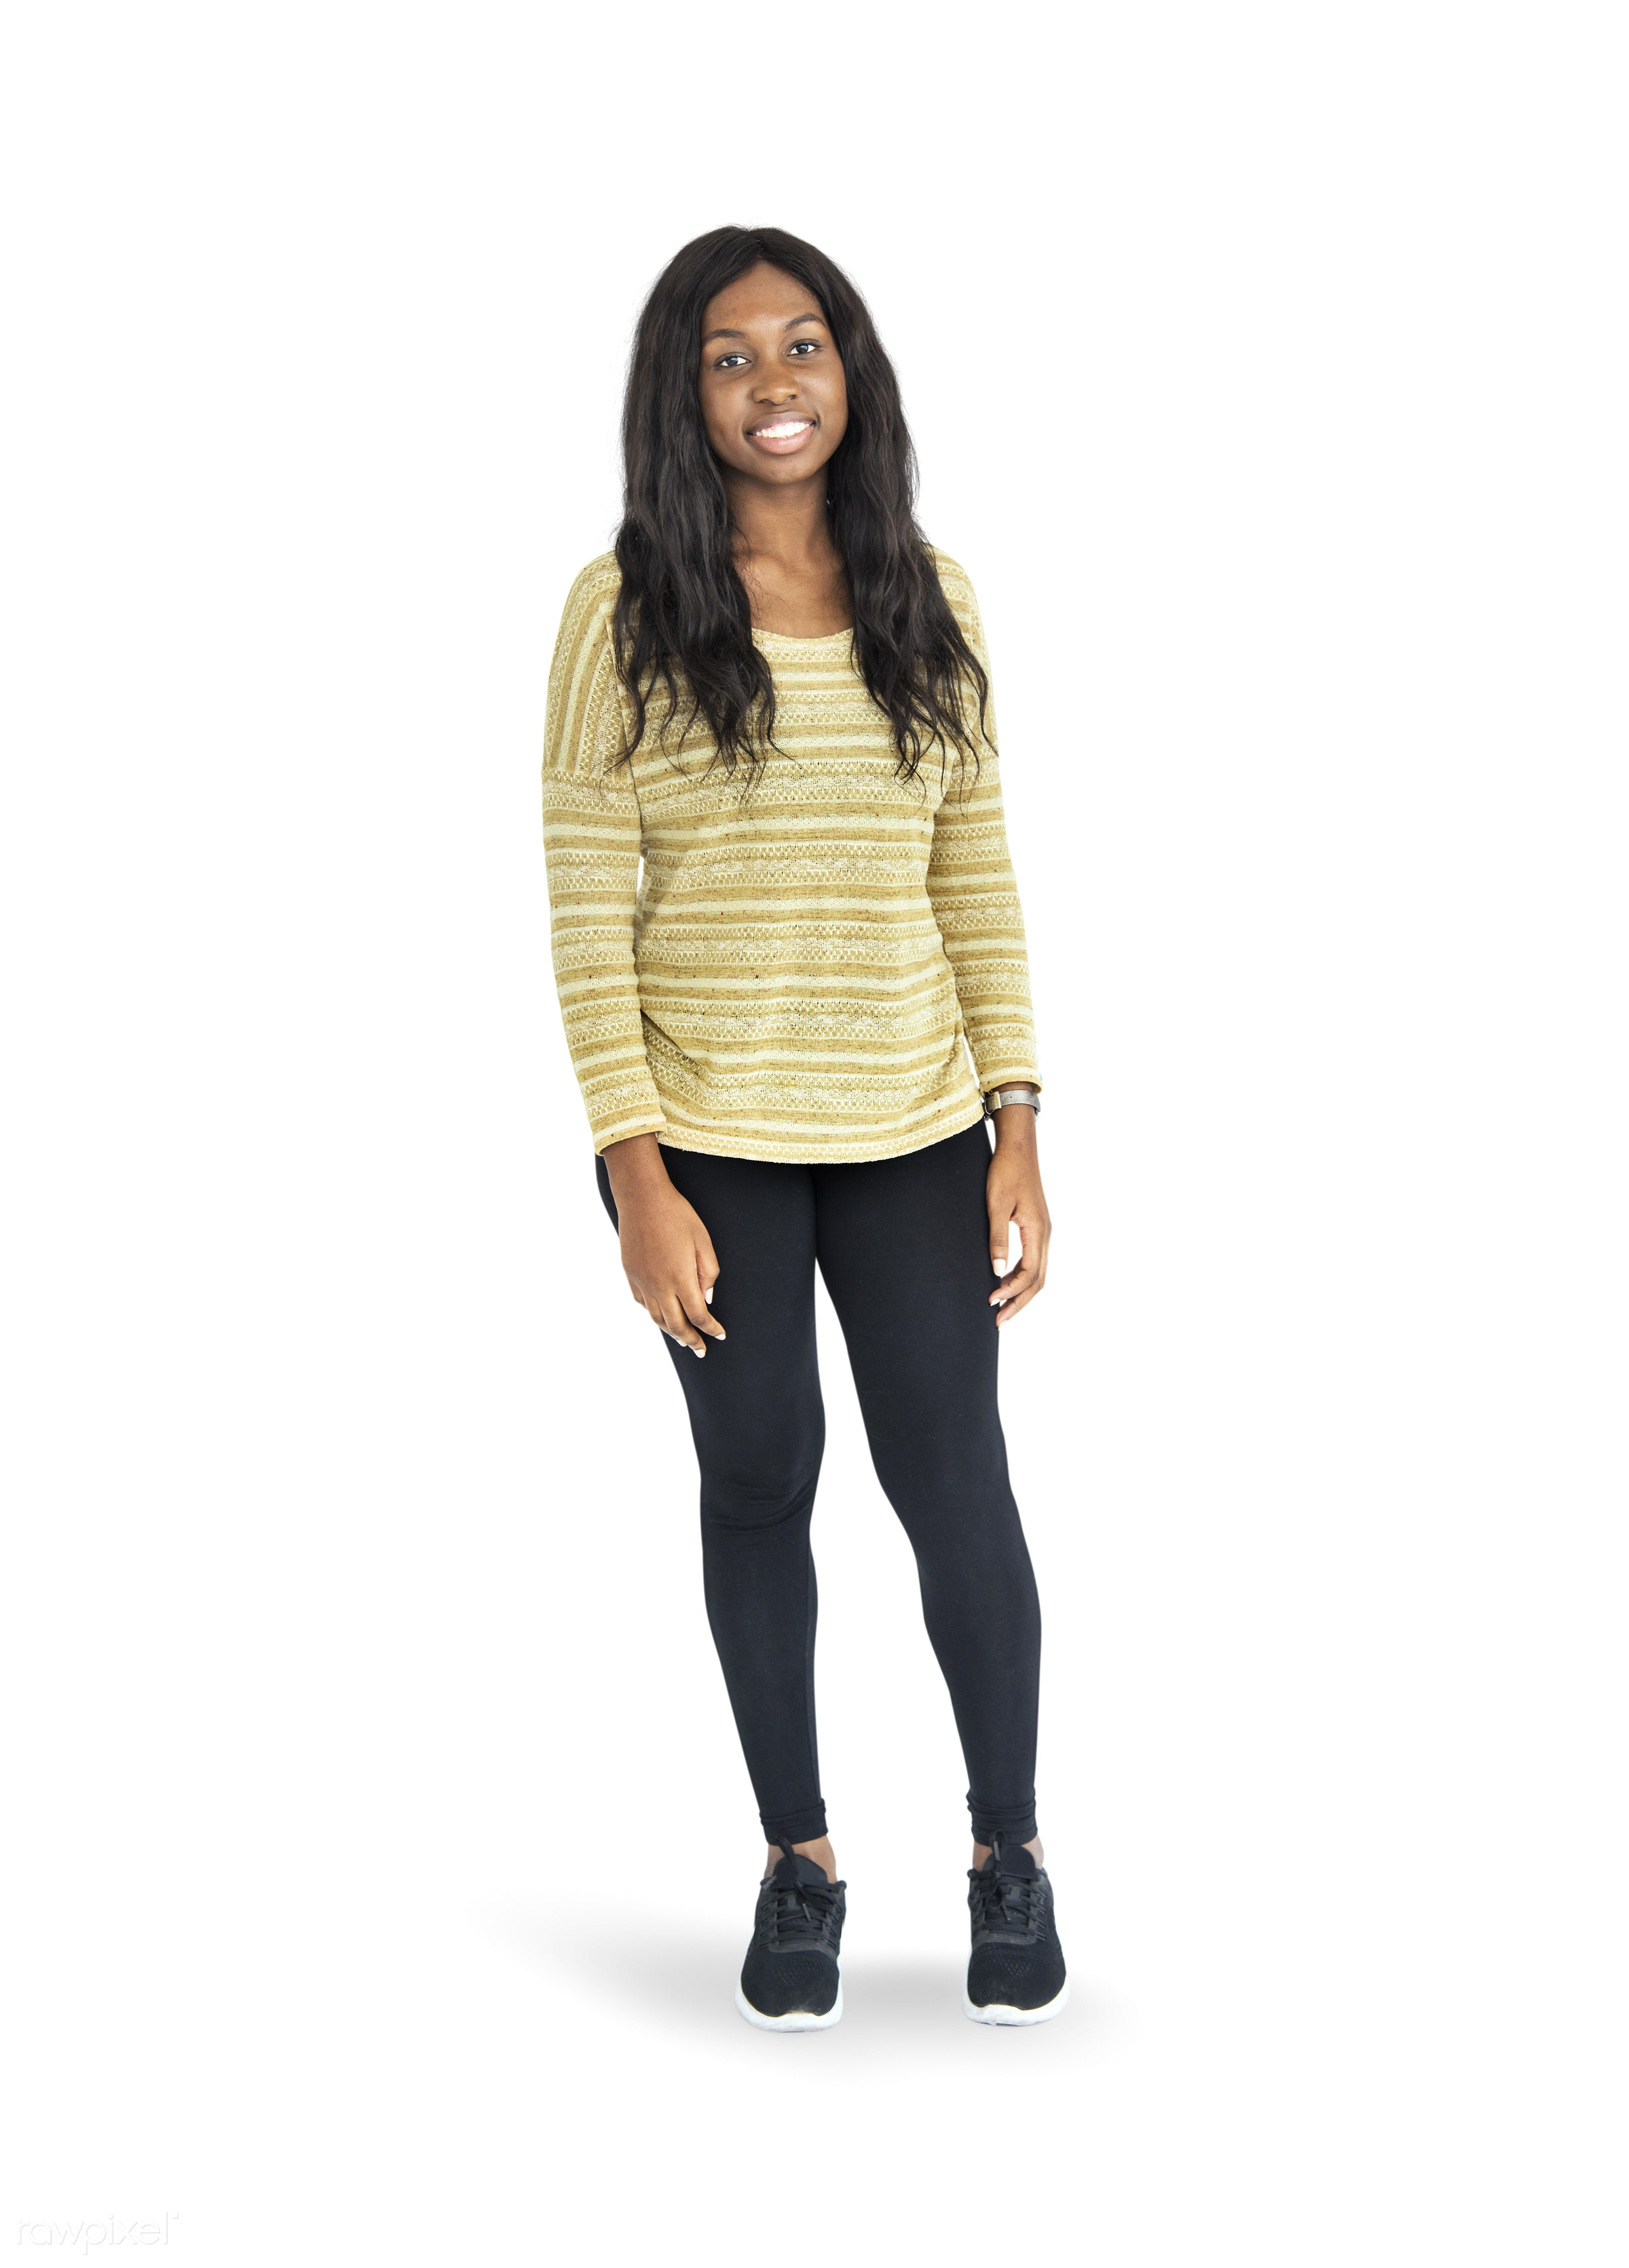 expression, person, satisfied, bright, relax, woman, teenager, lifestyle, smile, positive, cheerful, isolated, teen, african...